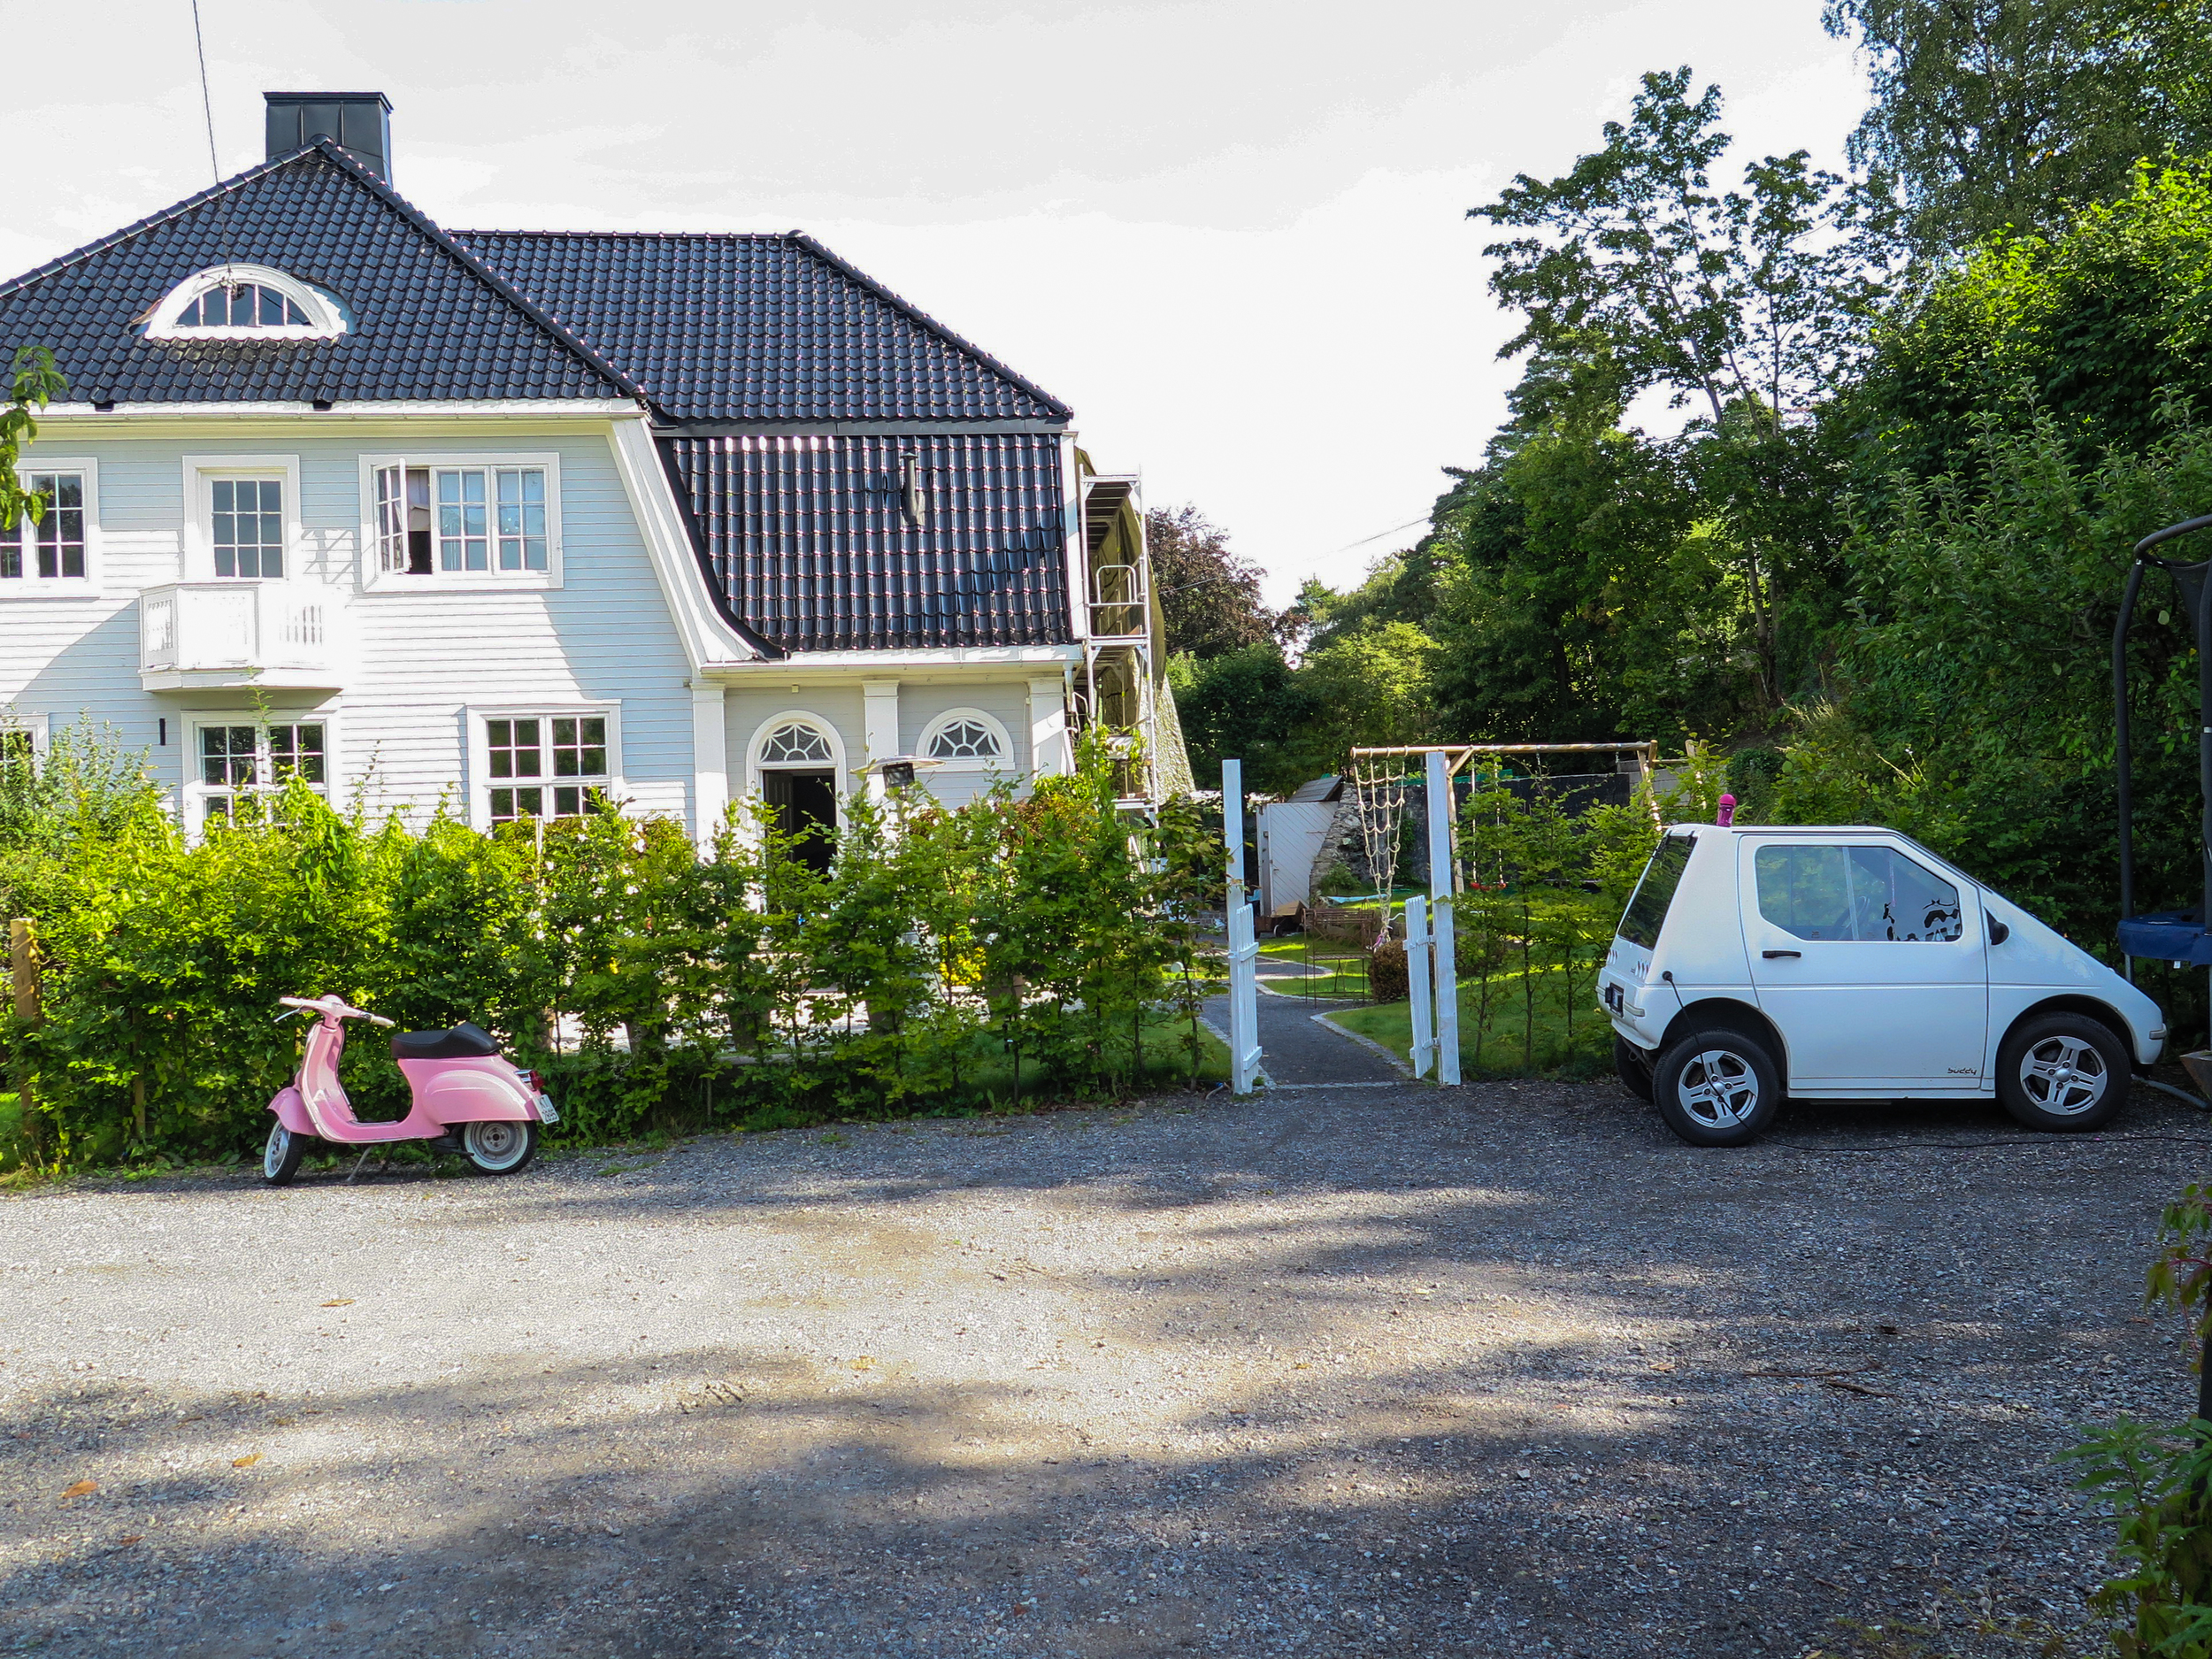 Traditional Norwegian home, mini electric car included. We were surprised by the amount of Teslas and other electric cars here.  In Norway if you own an electric car you can drive in special lanes and get free parking anywhere without meter fees.